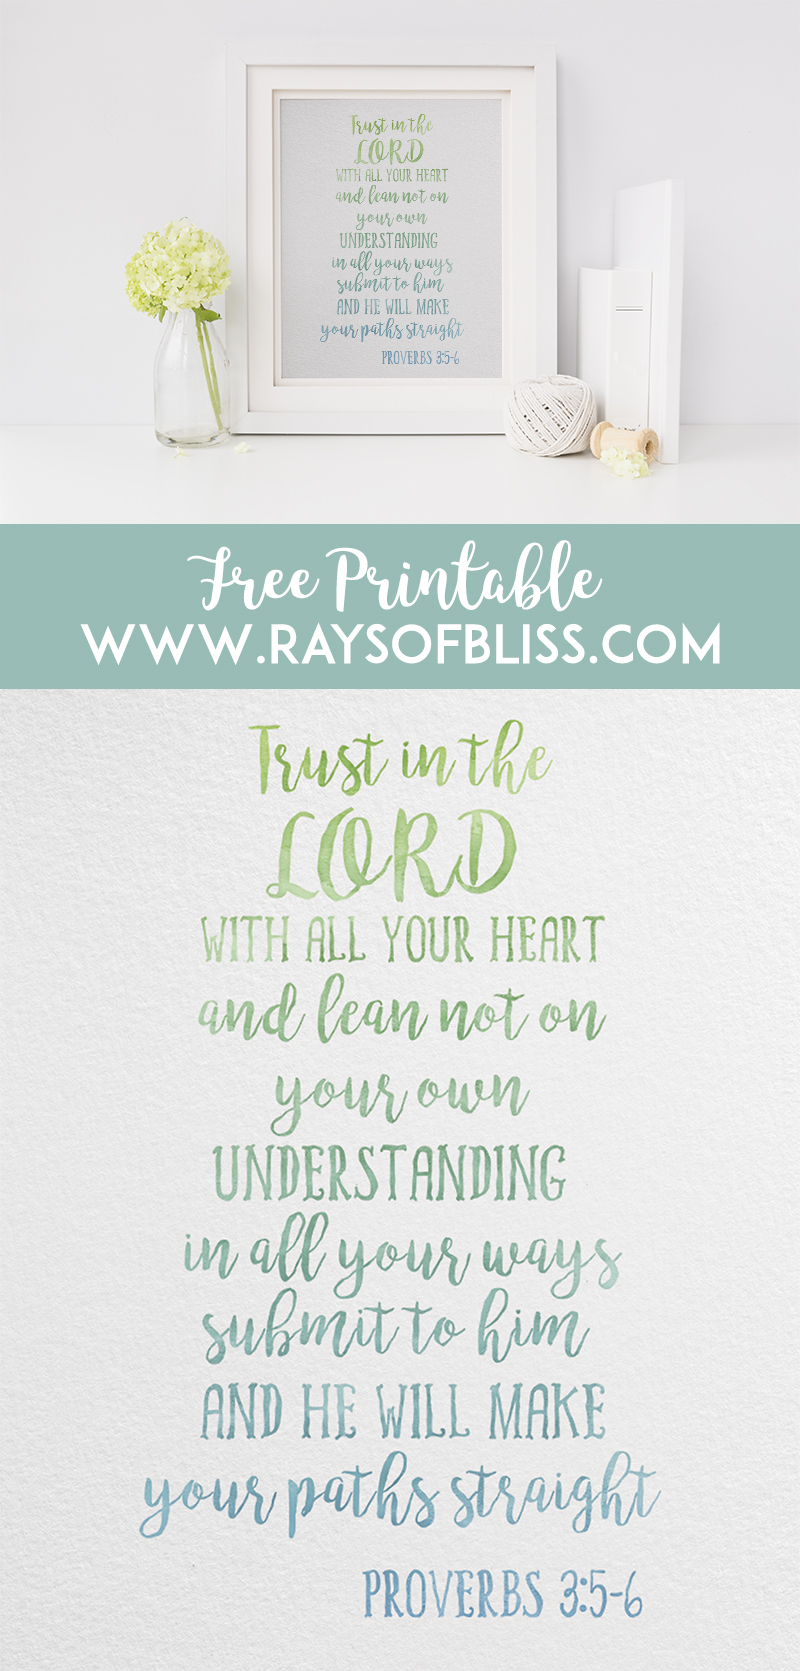 Bible Verse Free Printable Proverbs 3:5-6 from Rays of Bliss